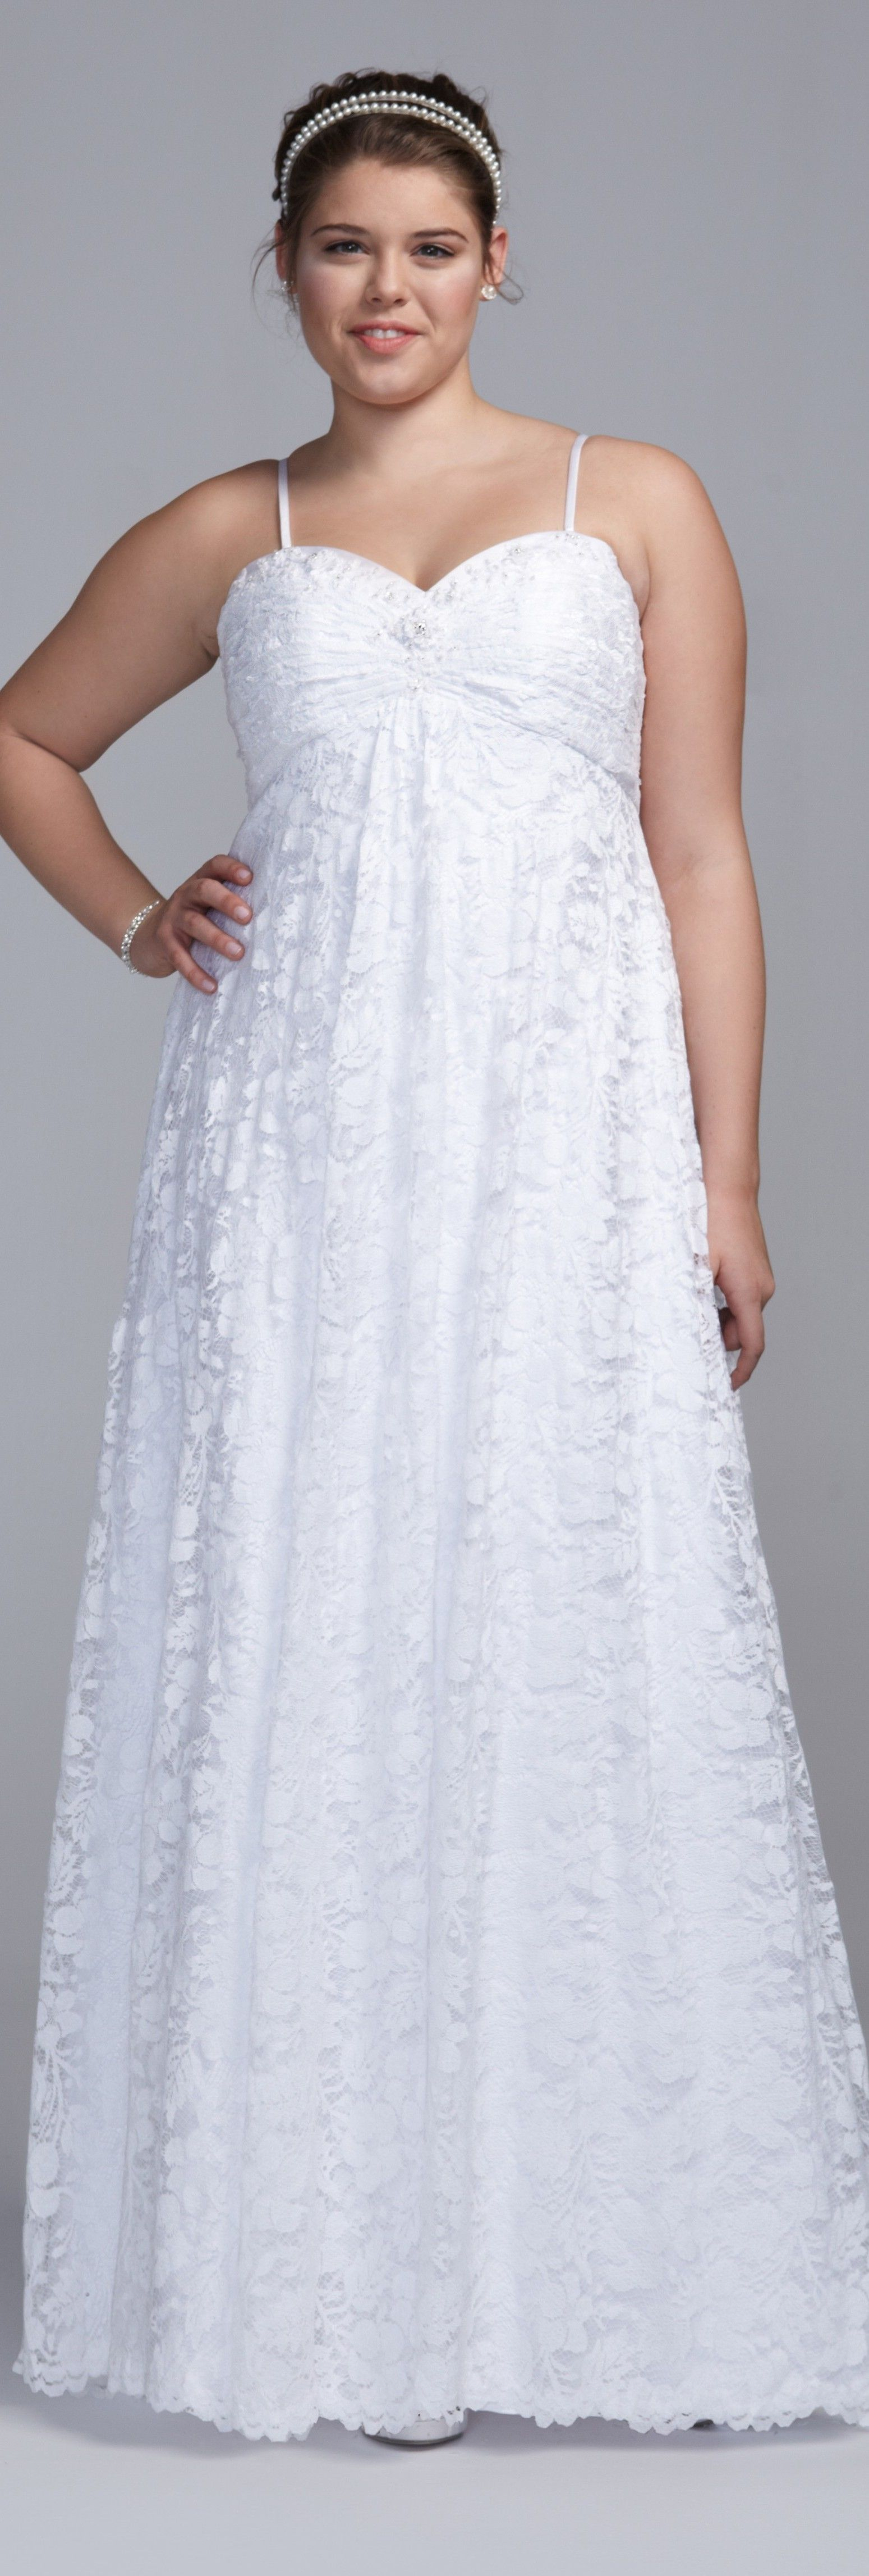 Here 39 s a sexy plus sized wedding dress for hip chicks with for Wedding dresses for big hips